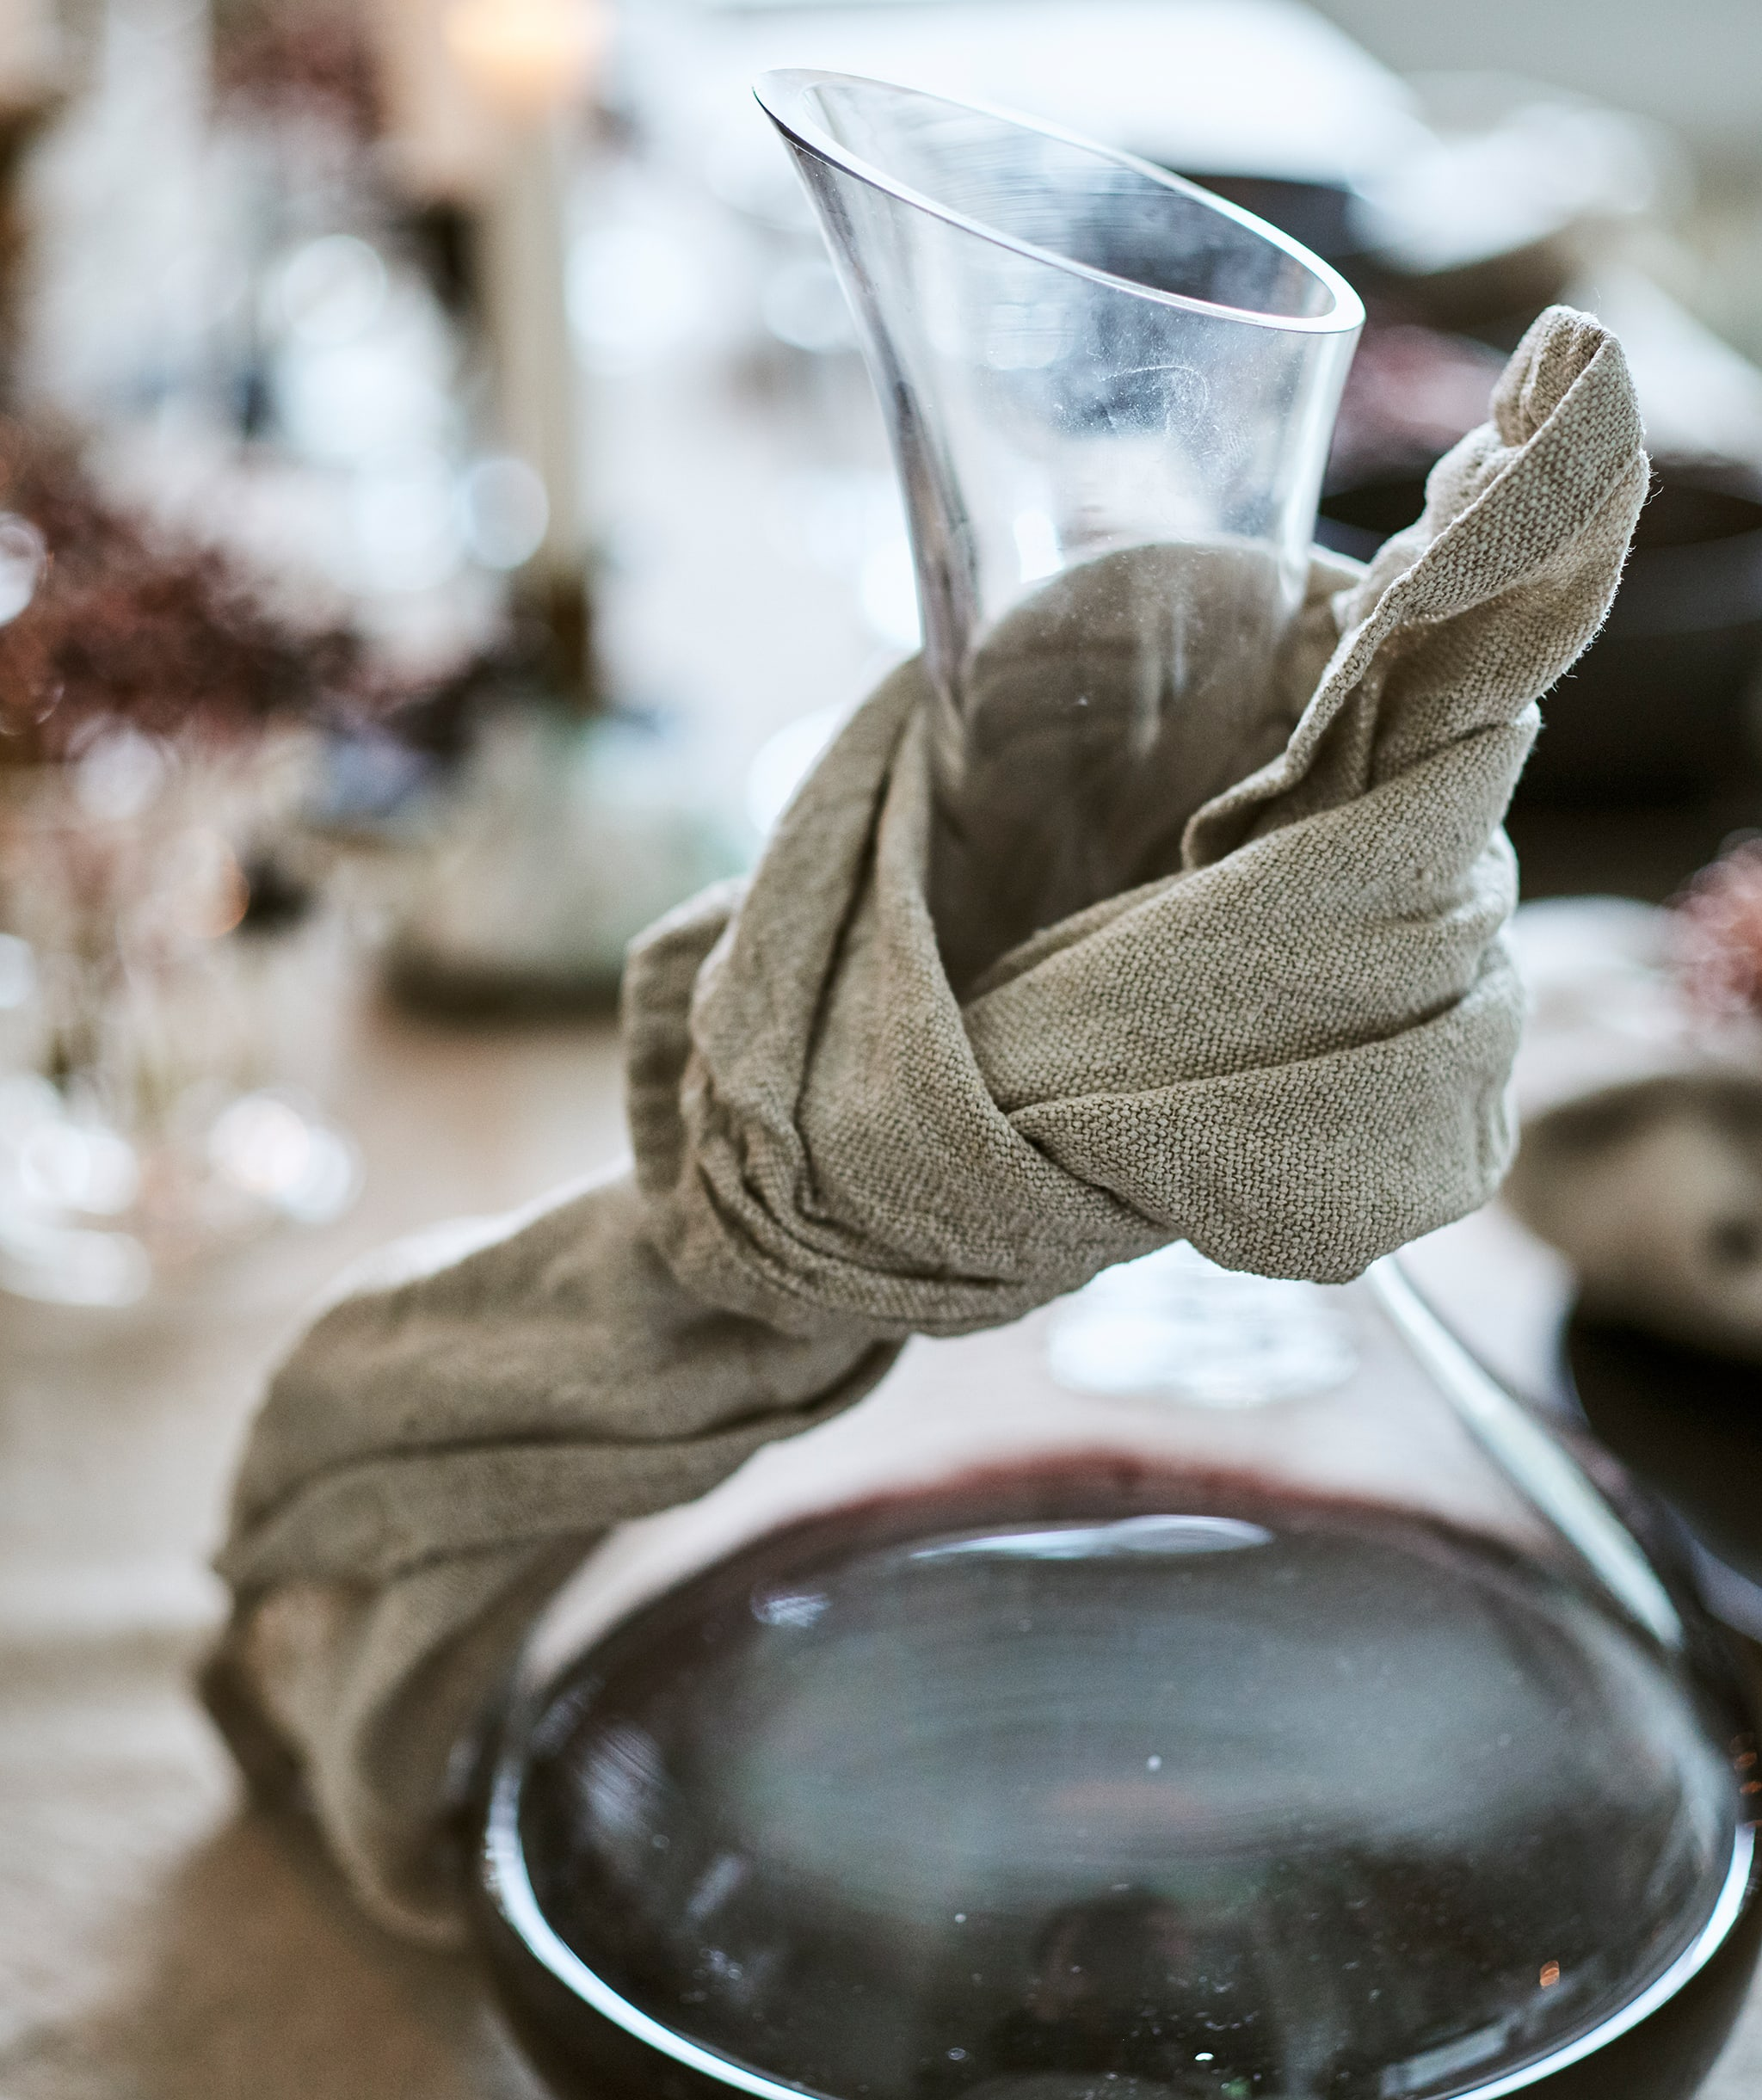 A glass carafe containing red wine with a natural coloured linen napkin tied round the neck to catch drips.